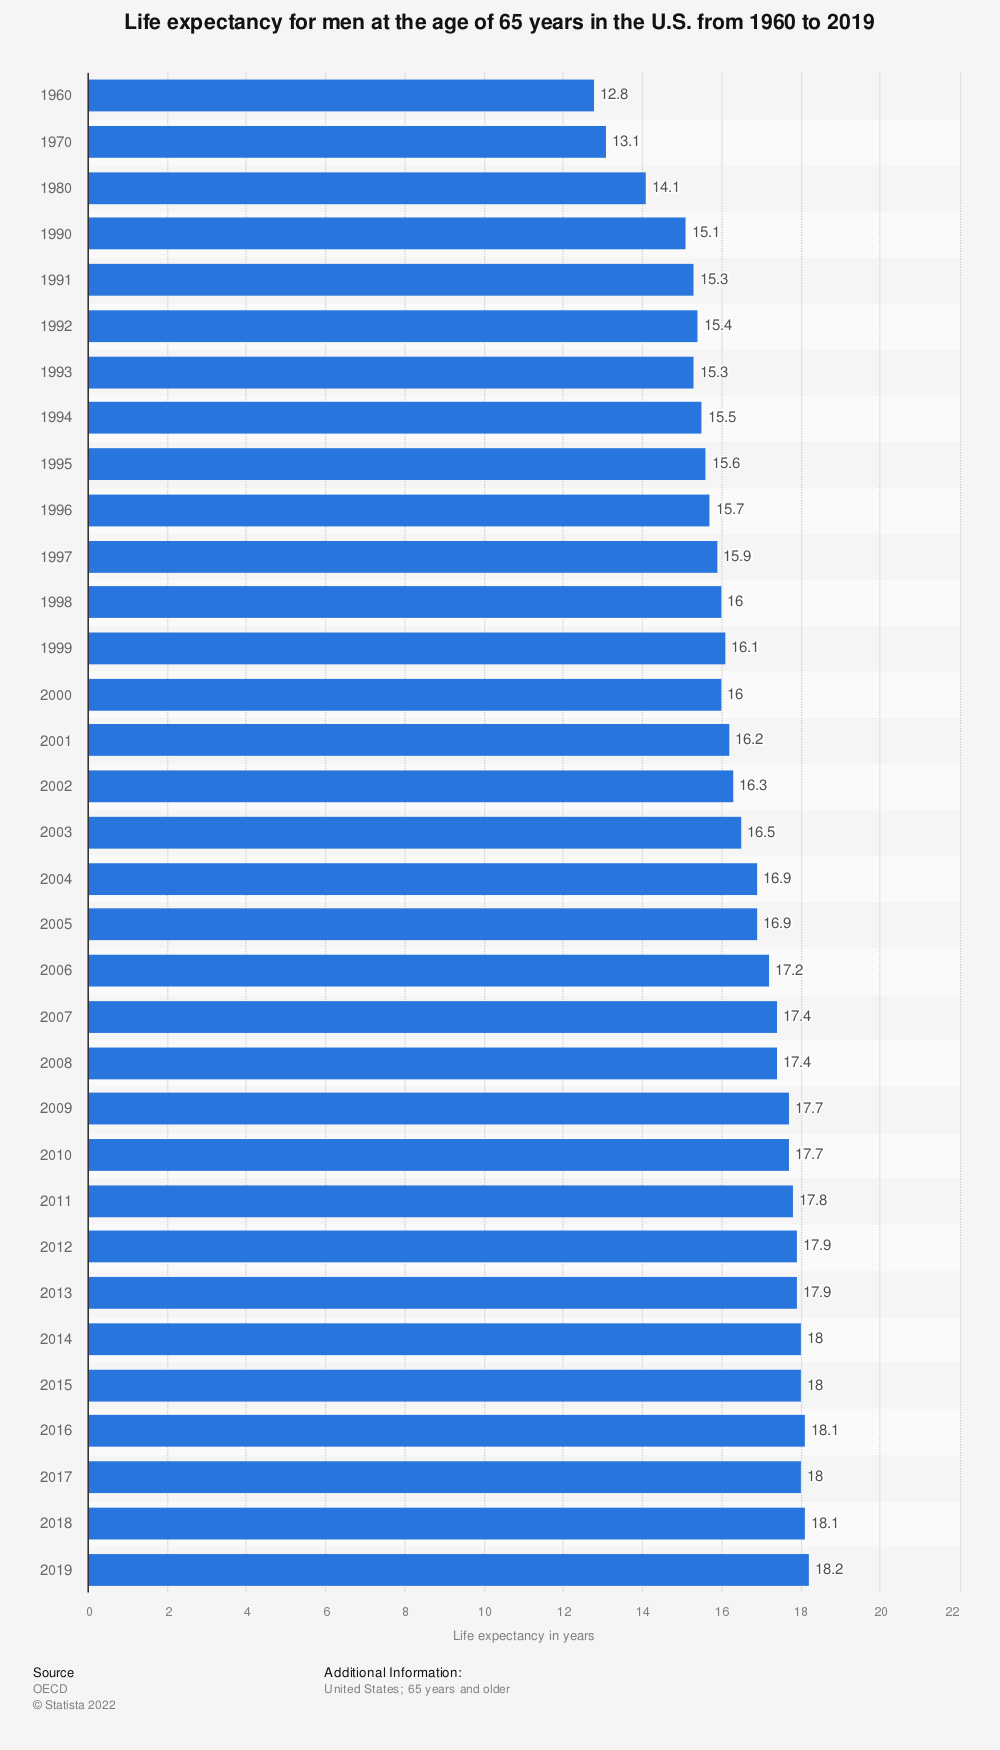 Statistic: Life expectancy for men at the age of 65 years in the U.S. from 1960 to 2018 | Statista